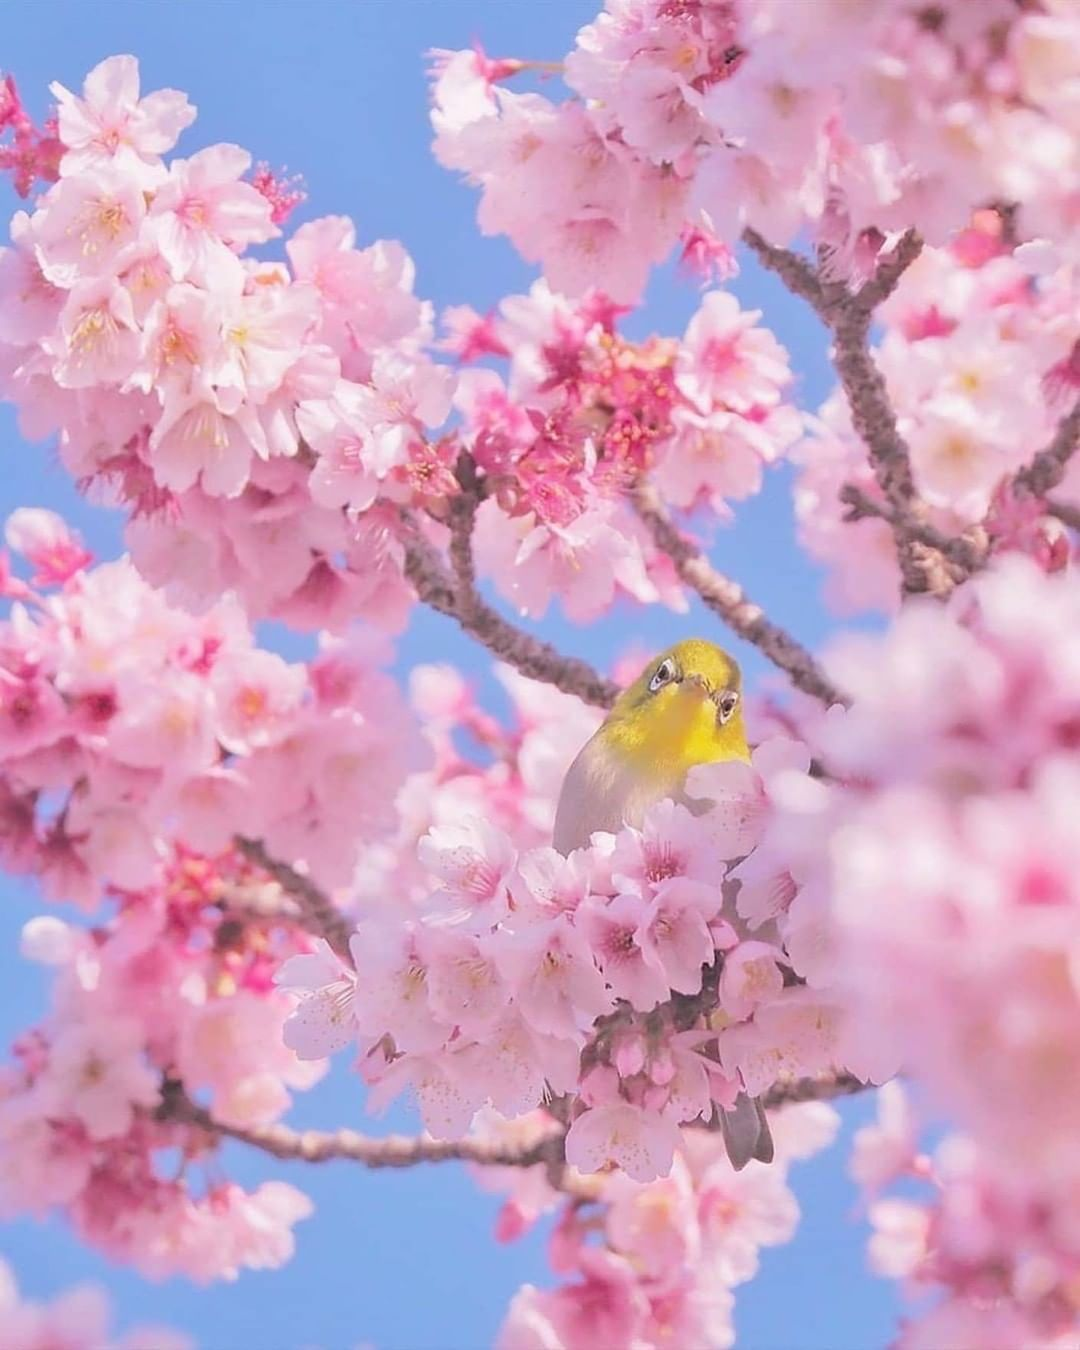 4 231 Begenme 32 Yorum Instagram Da Discover Earth Discoverearth It S No Secret That Cherry Bloss Cherry Blossom Tree Photography Cherry Blossom Season